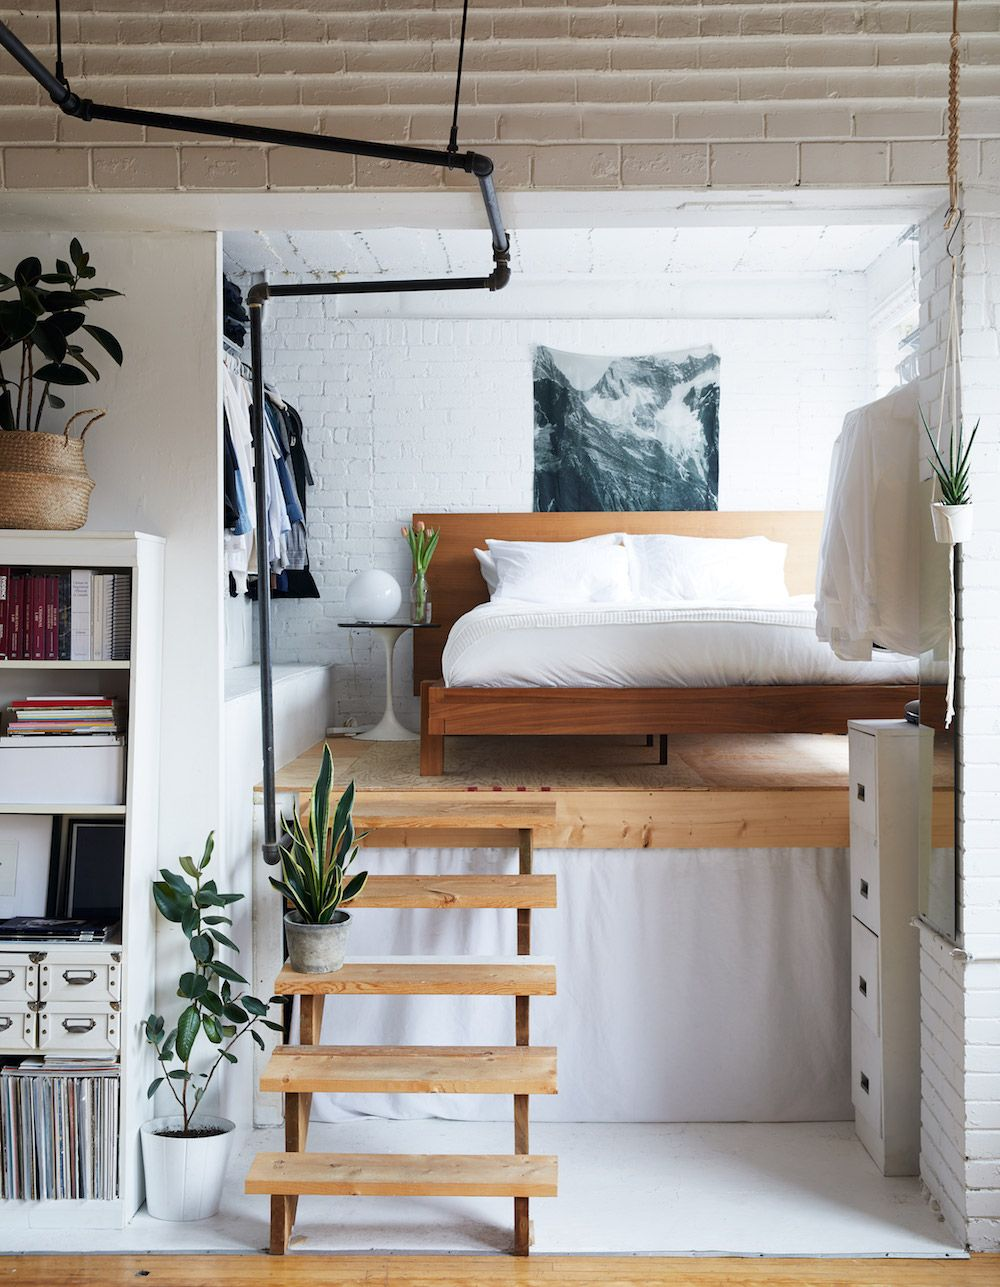 d coration simple et chic pour ce refuge de bibliophile pinterest einrichten und wohnen. Black Bedroom Furniture Sets. Home Design Ideas